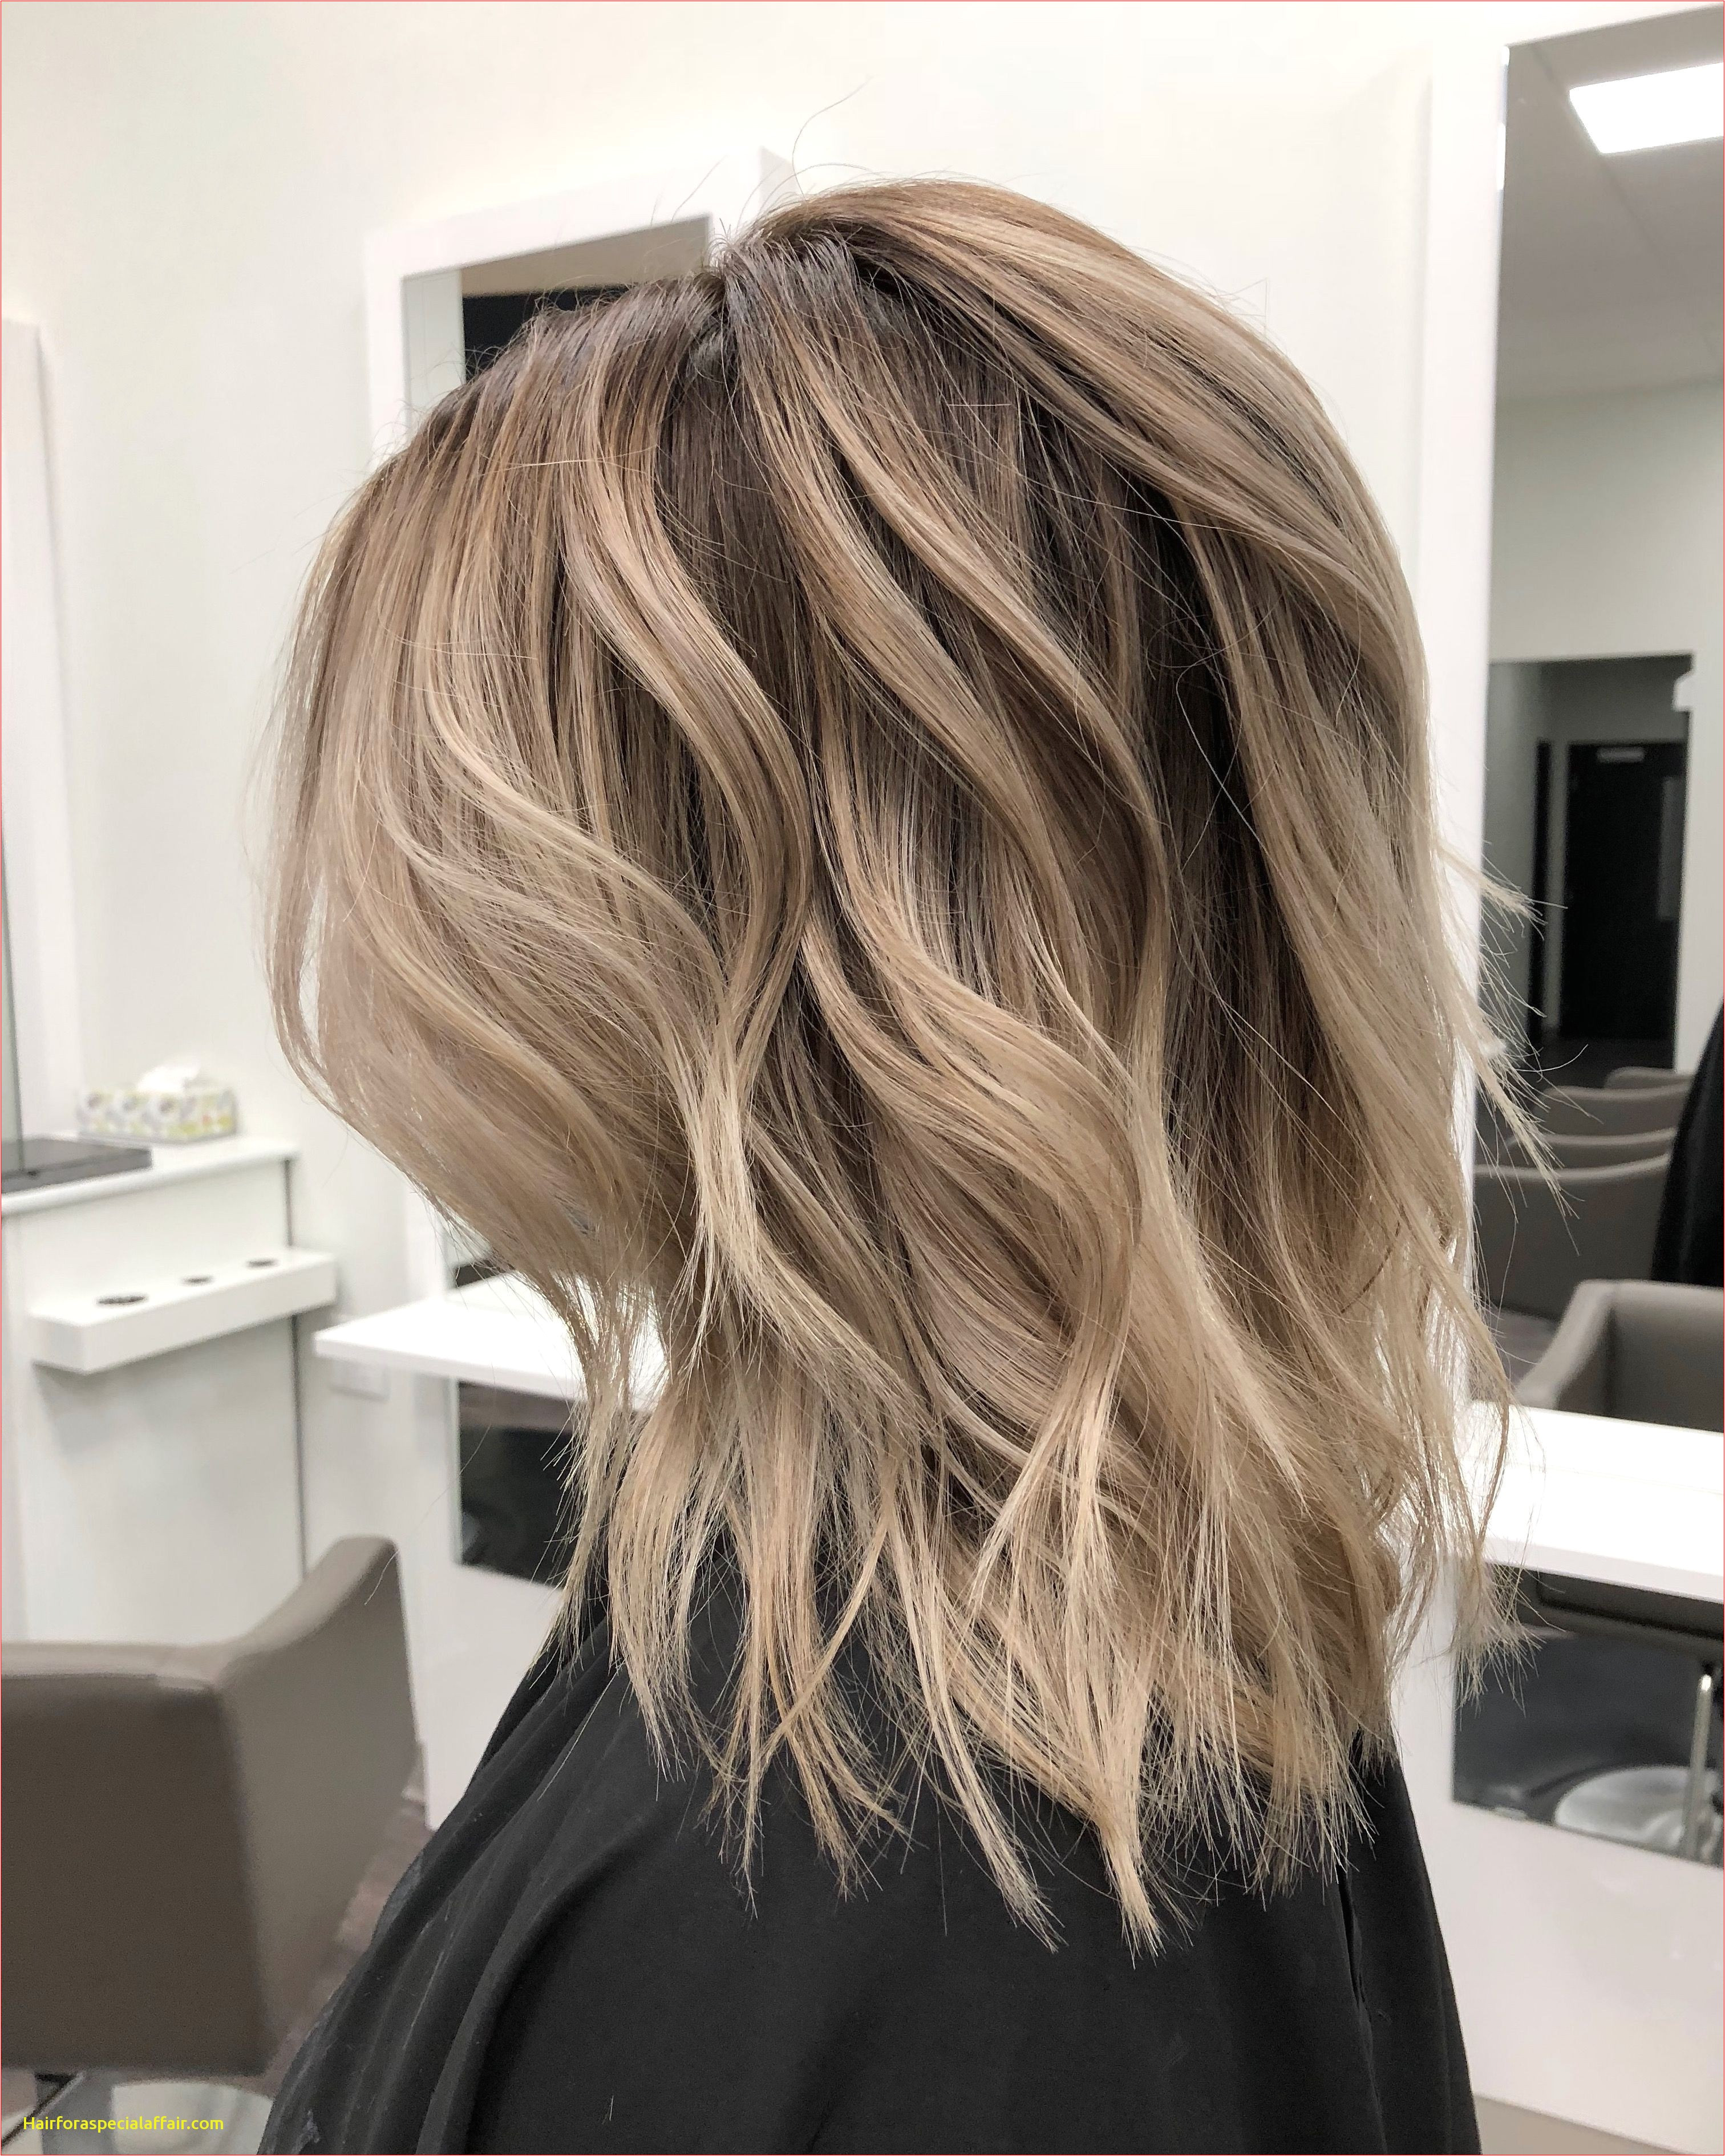 Cute and Easy Hairstyles New Hairstyles for Medium Hair with Layers Elegant I Pinimg 1200x 0d